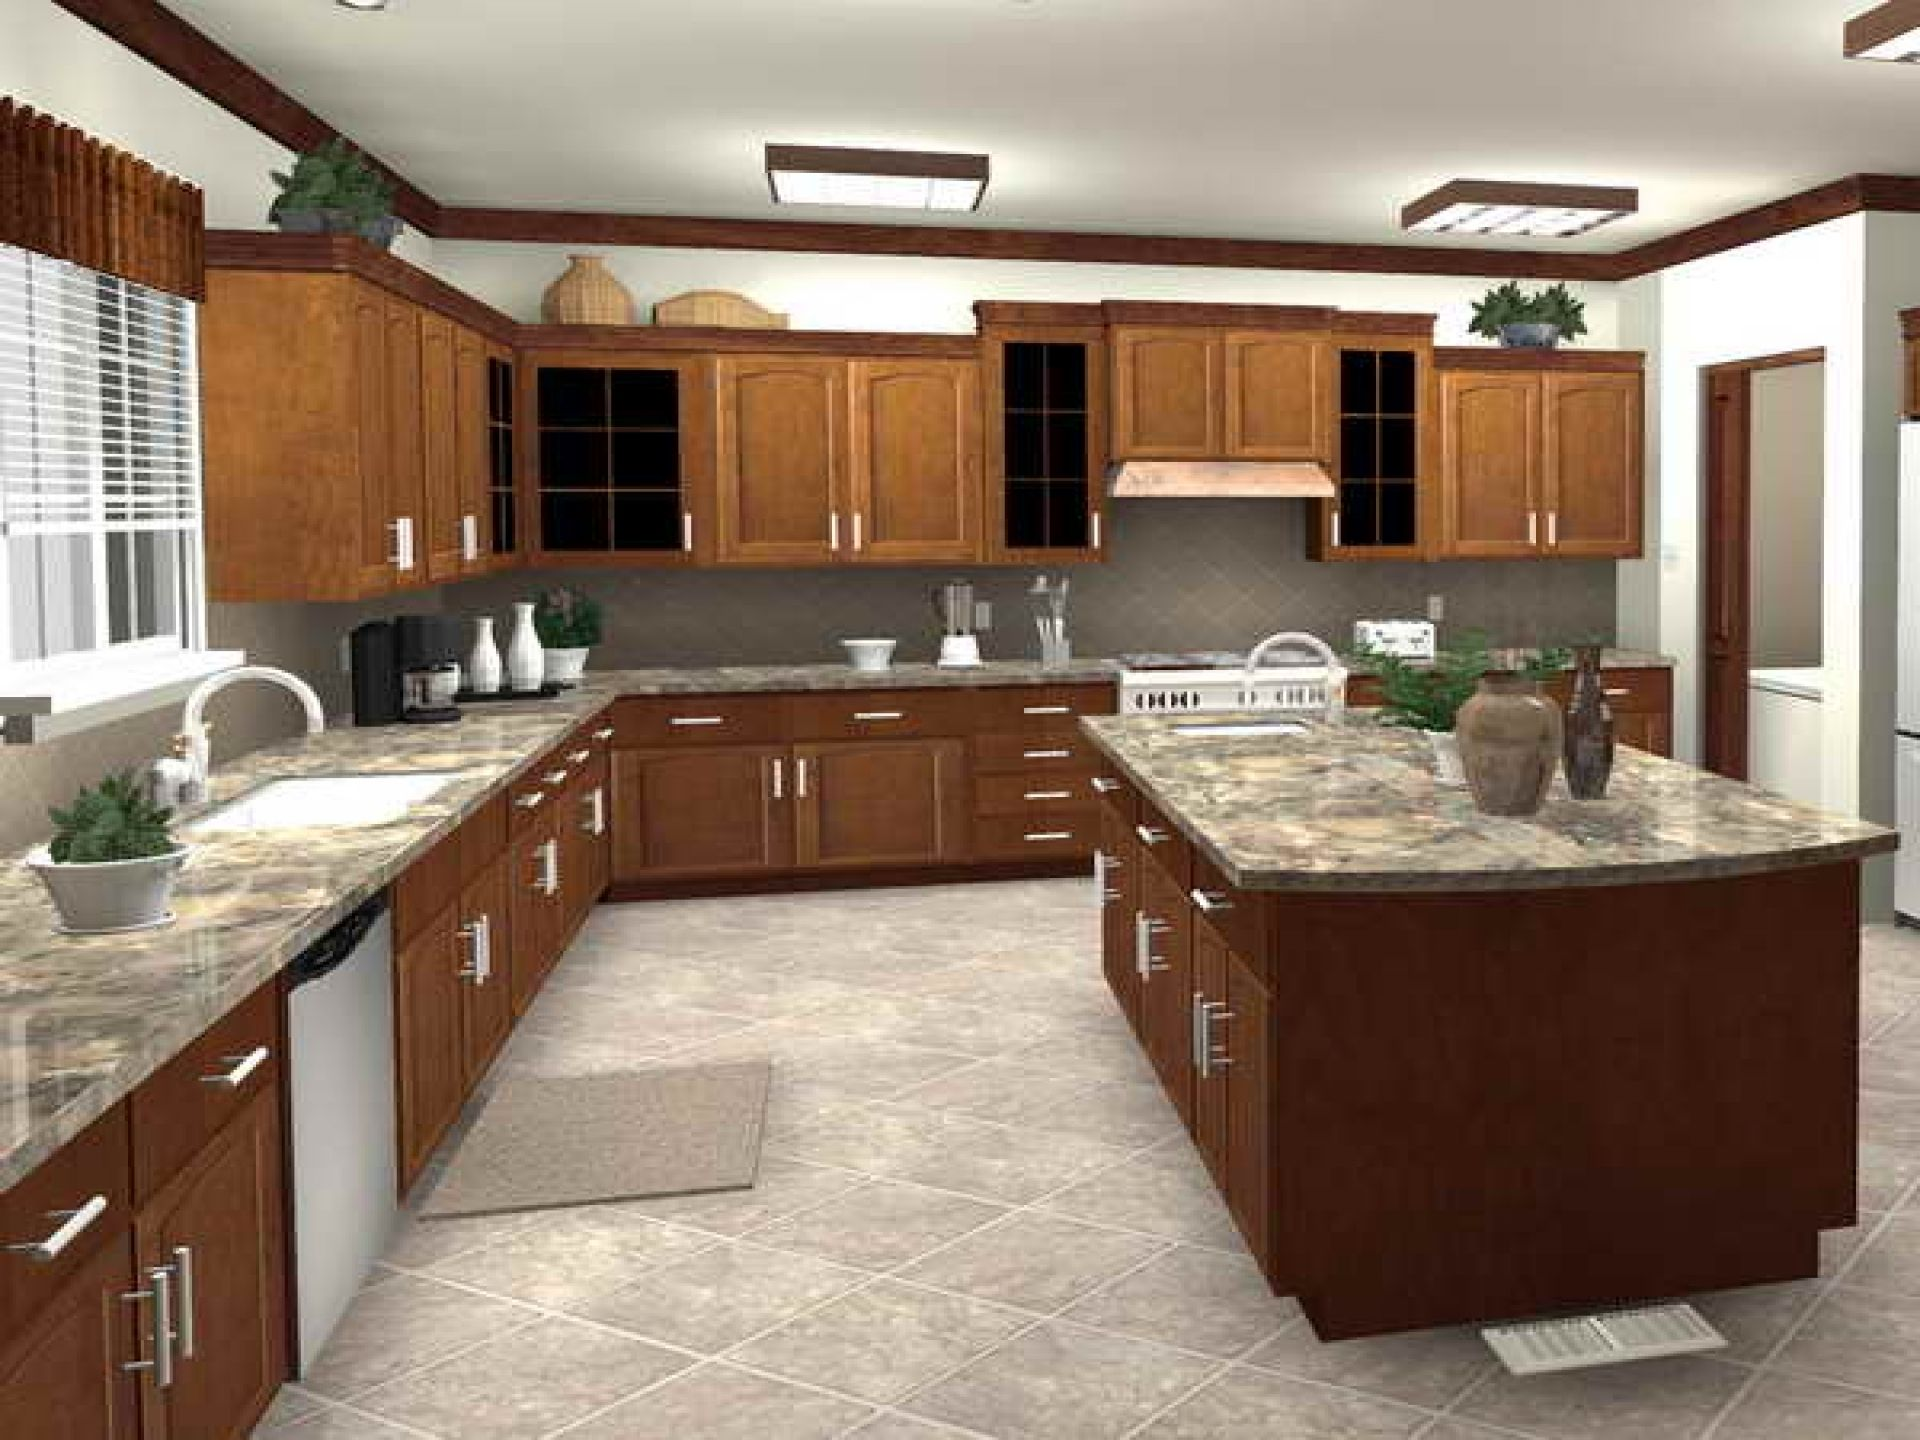 most popular kitchen design ideas u remodeling ideas on budget